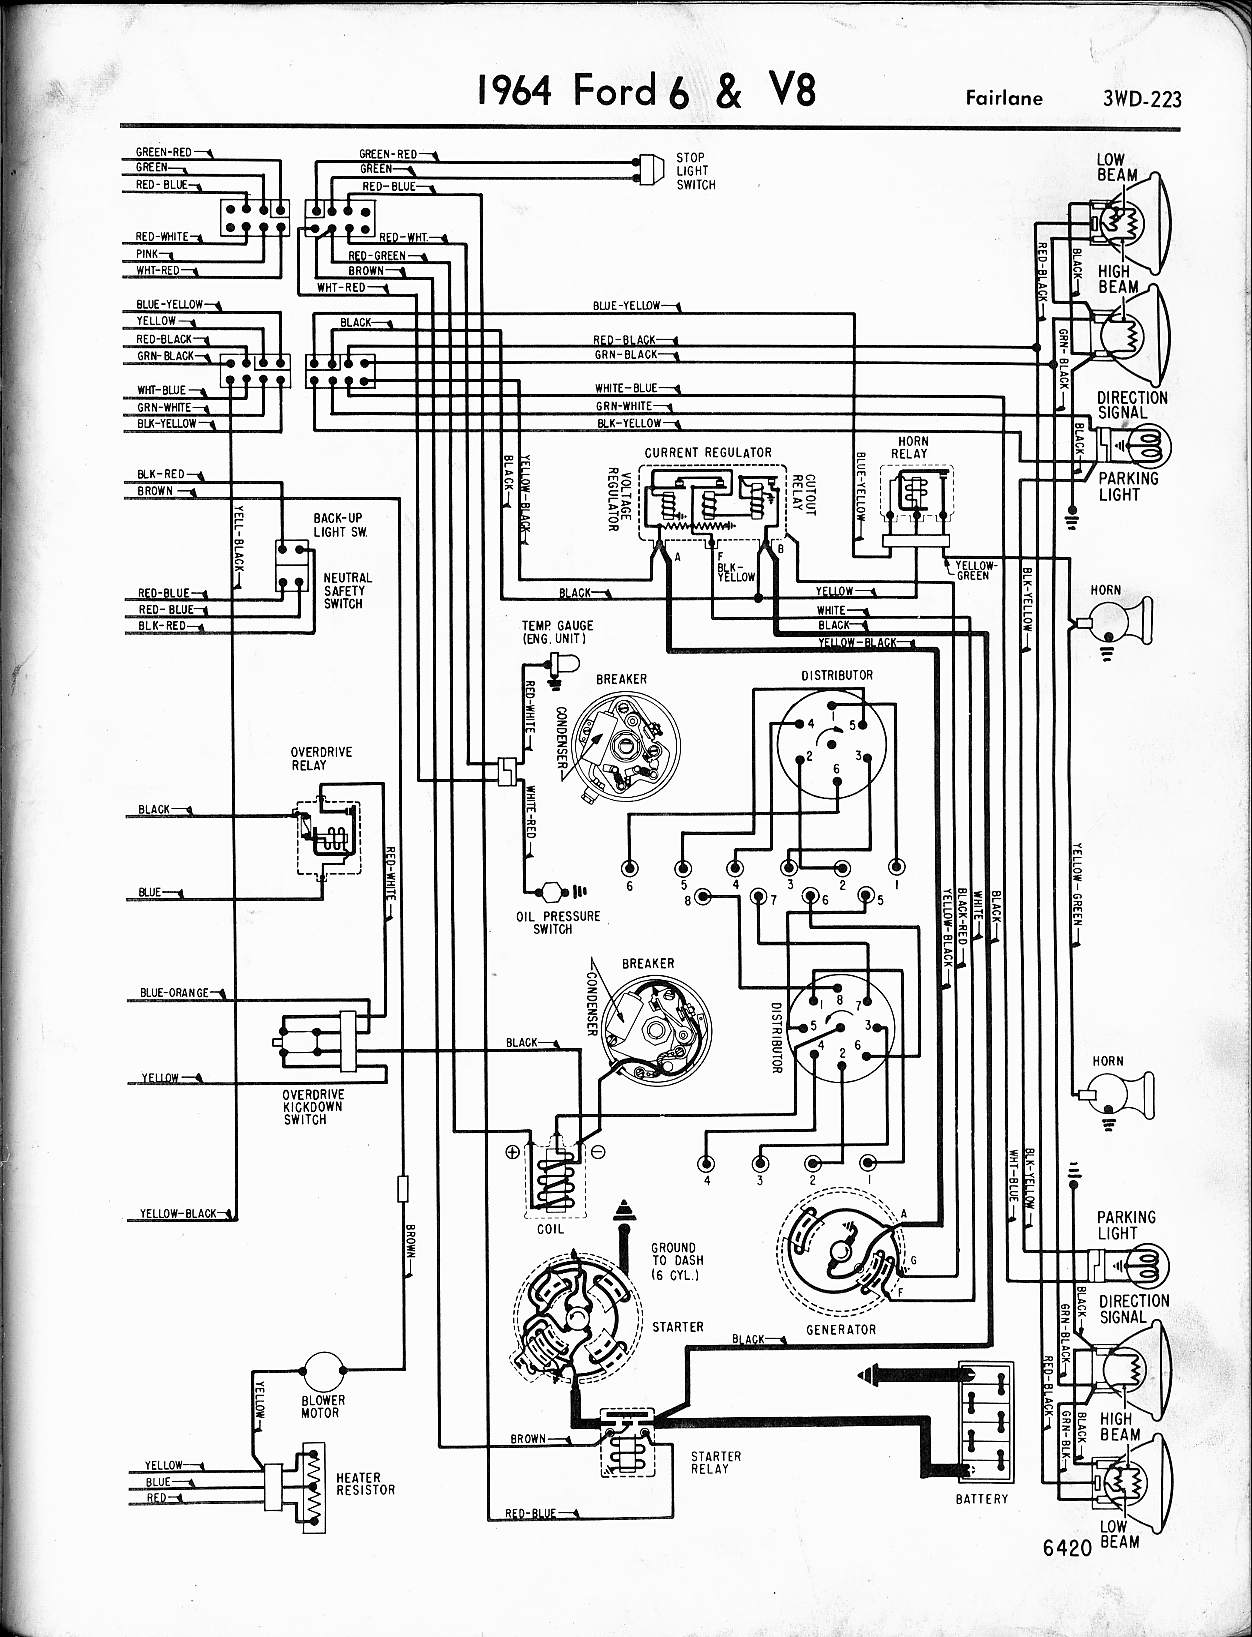 Online Owners Manual Ford 1993 E350 additionally Chevy 3 4 Engine Diagram as well Technik Plan in addition 66chgdiag as well 1961 1963 Ford 100 Wiring Diagram Schematics 1964 F100 Truck. on 1963 falcon wiring diagram